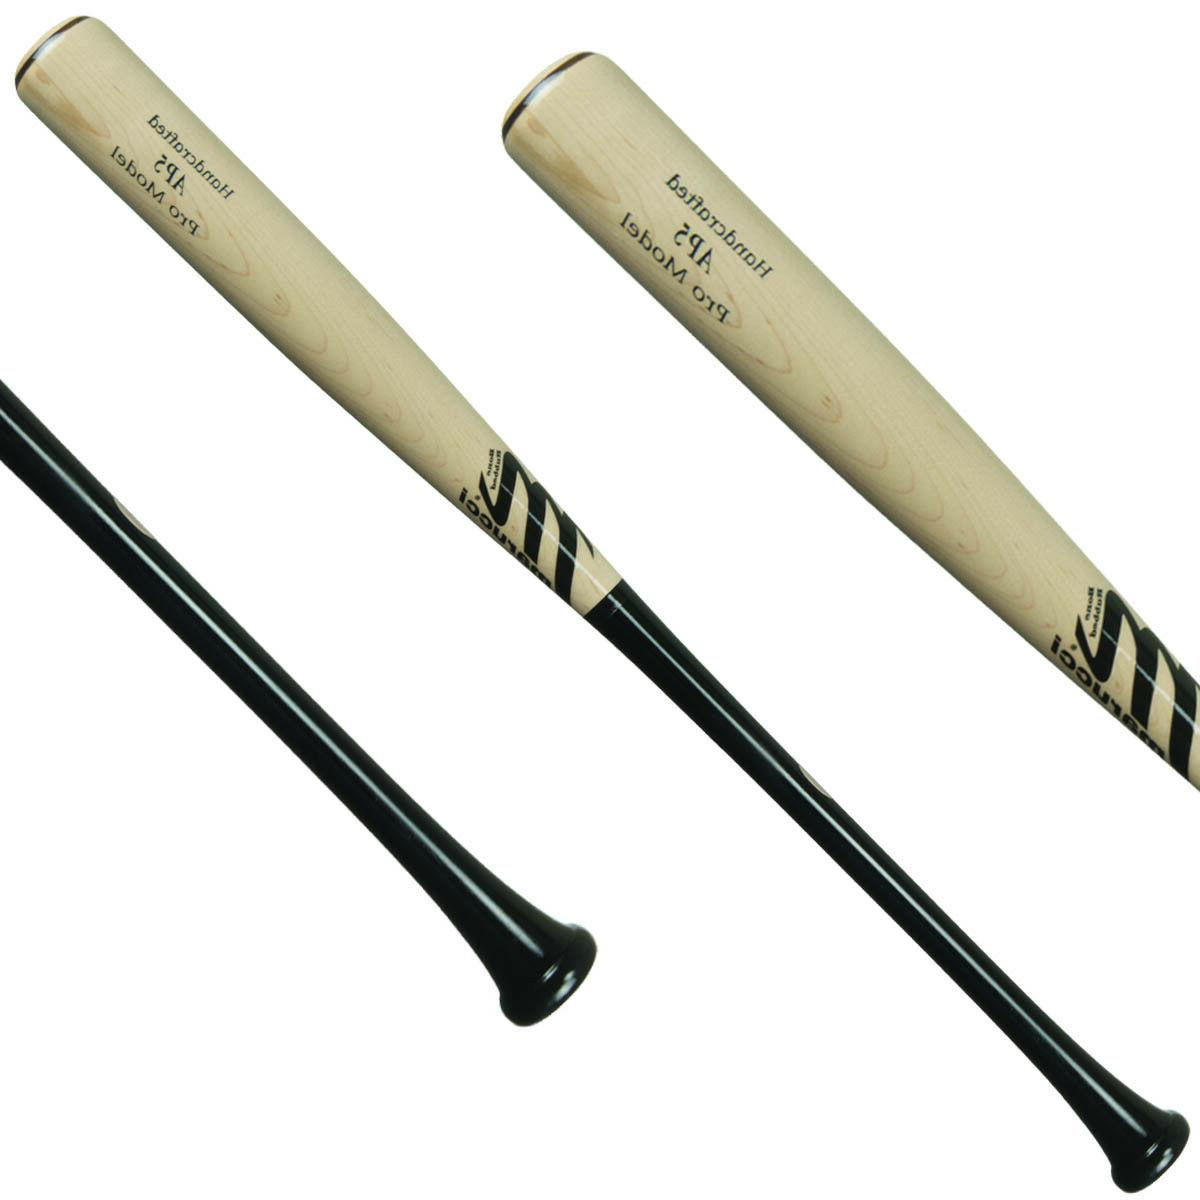 ap5 pro maple wooden baseball bat 34